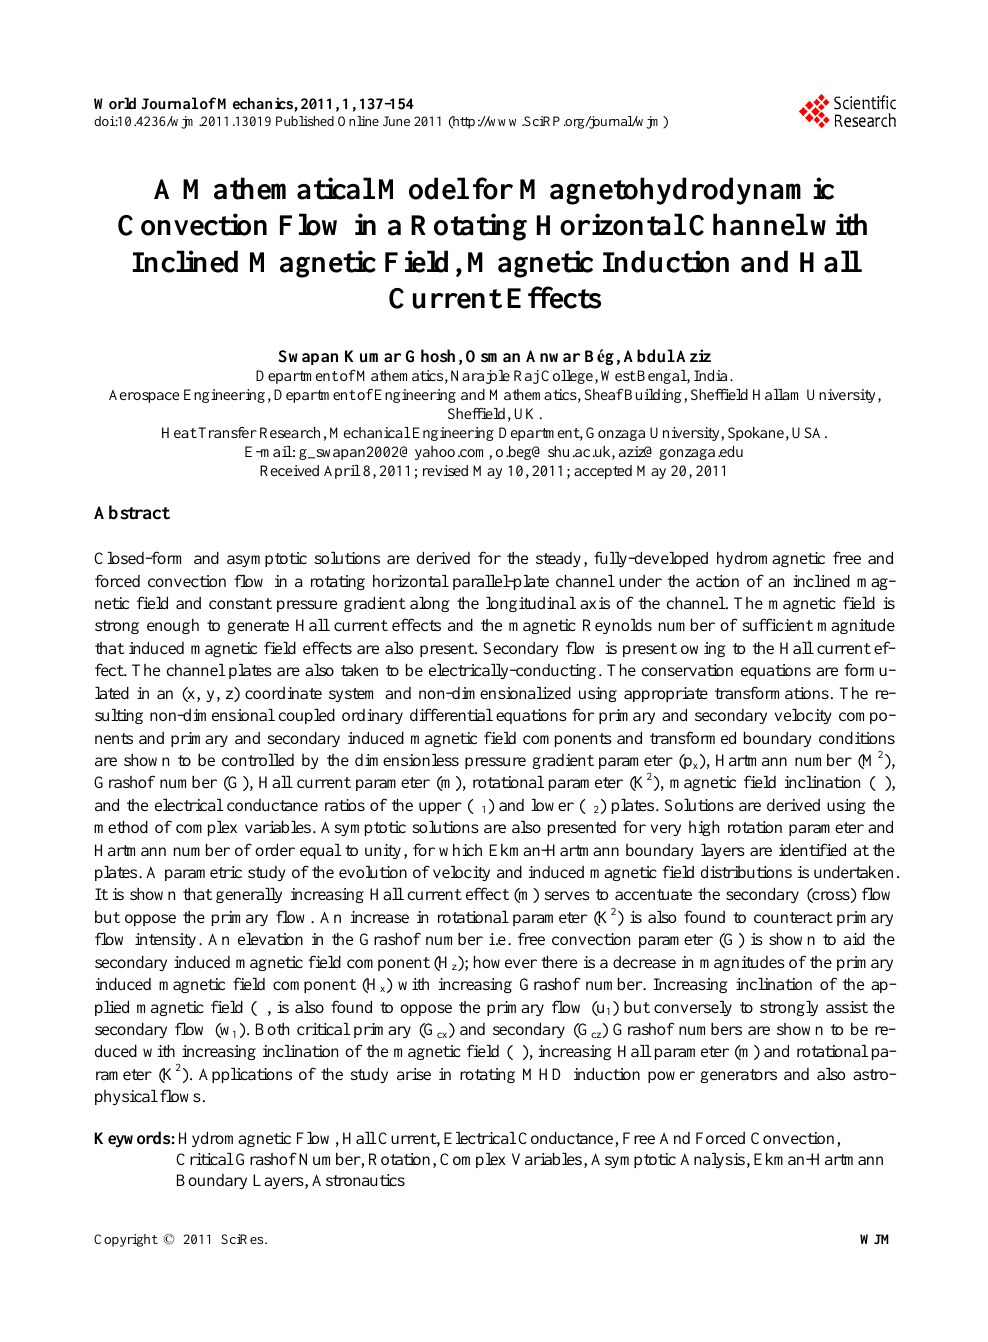 A Mathematical Model for Magnetohydrodynamic Convection Flow